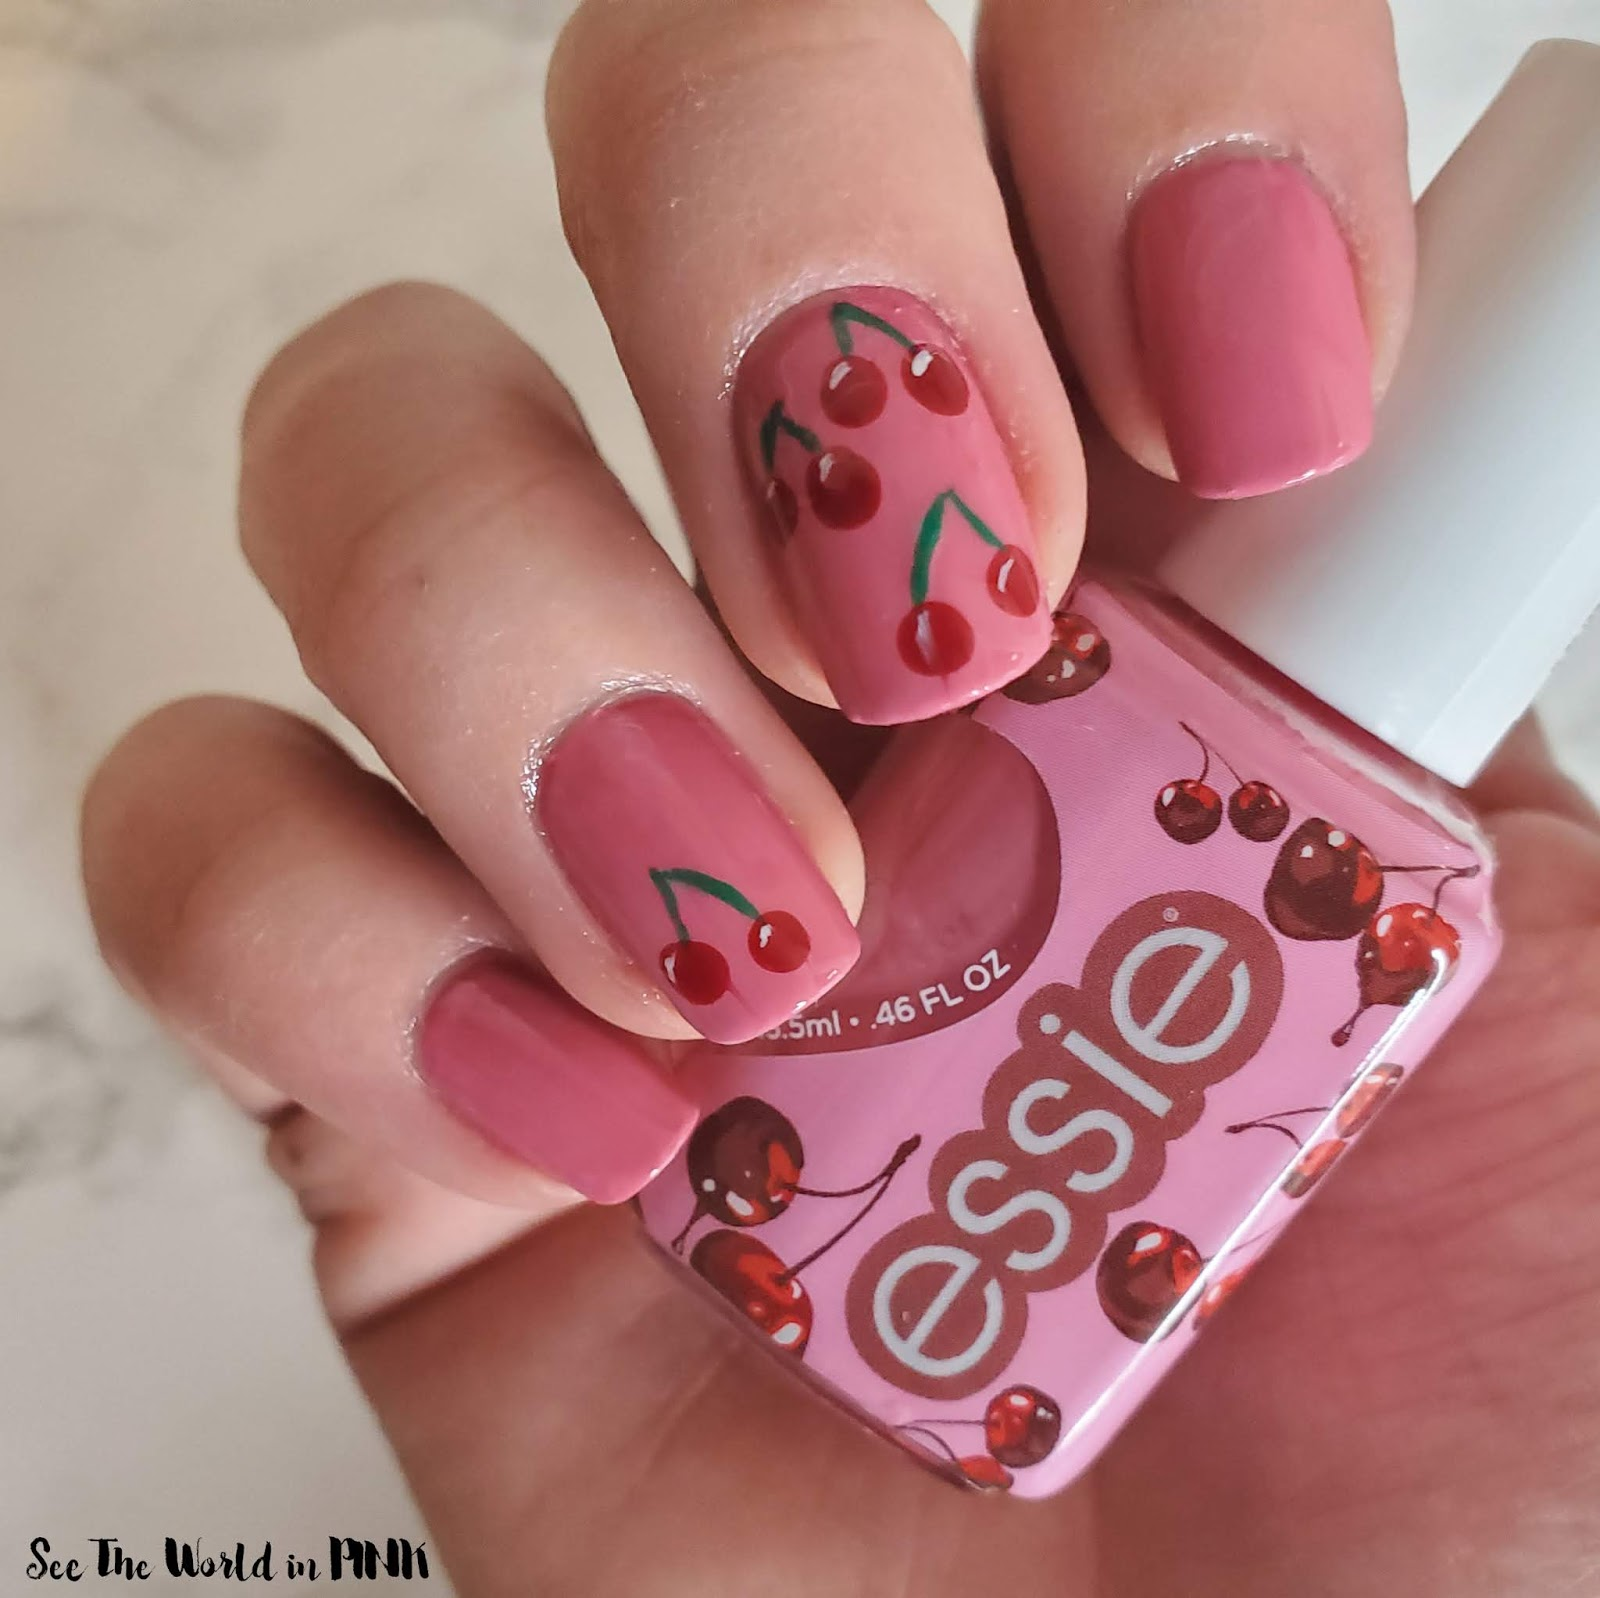 Manicure Monday - Cherry Nail Art